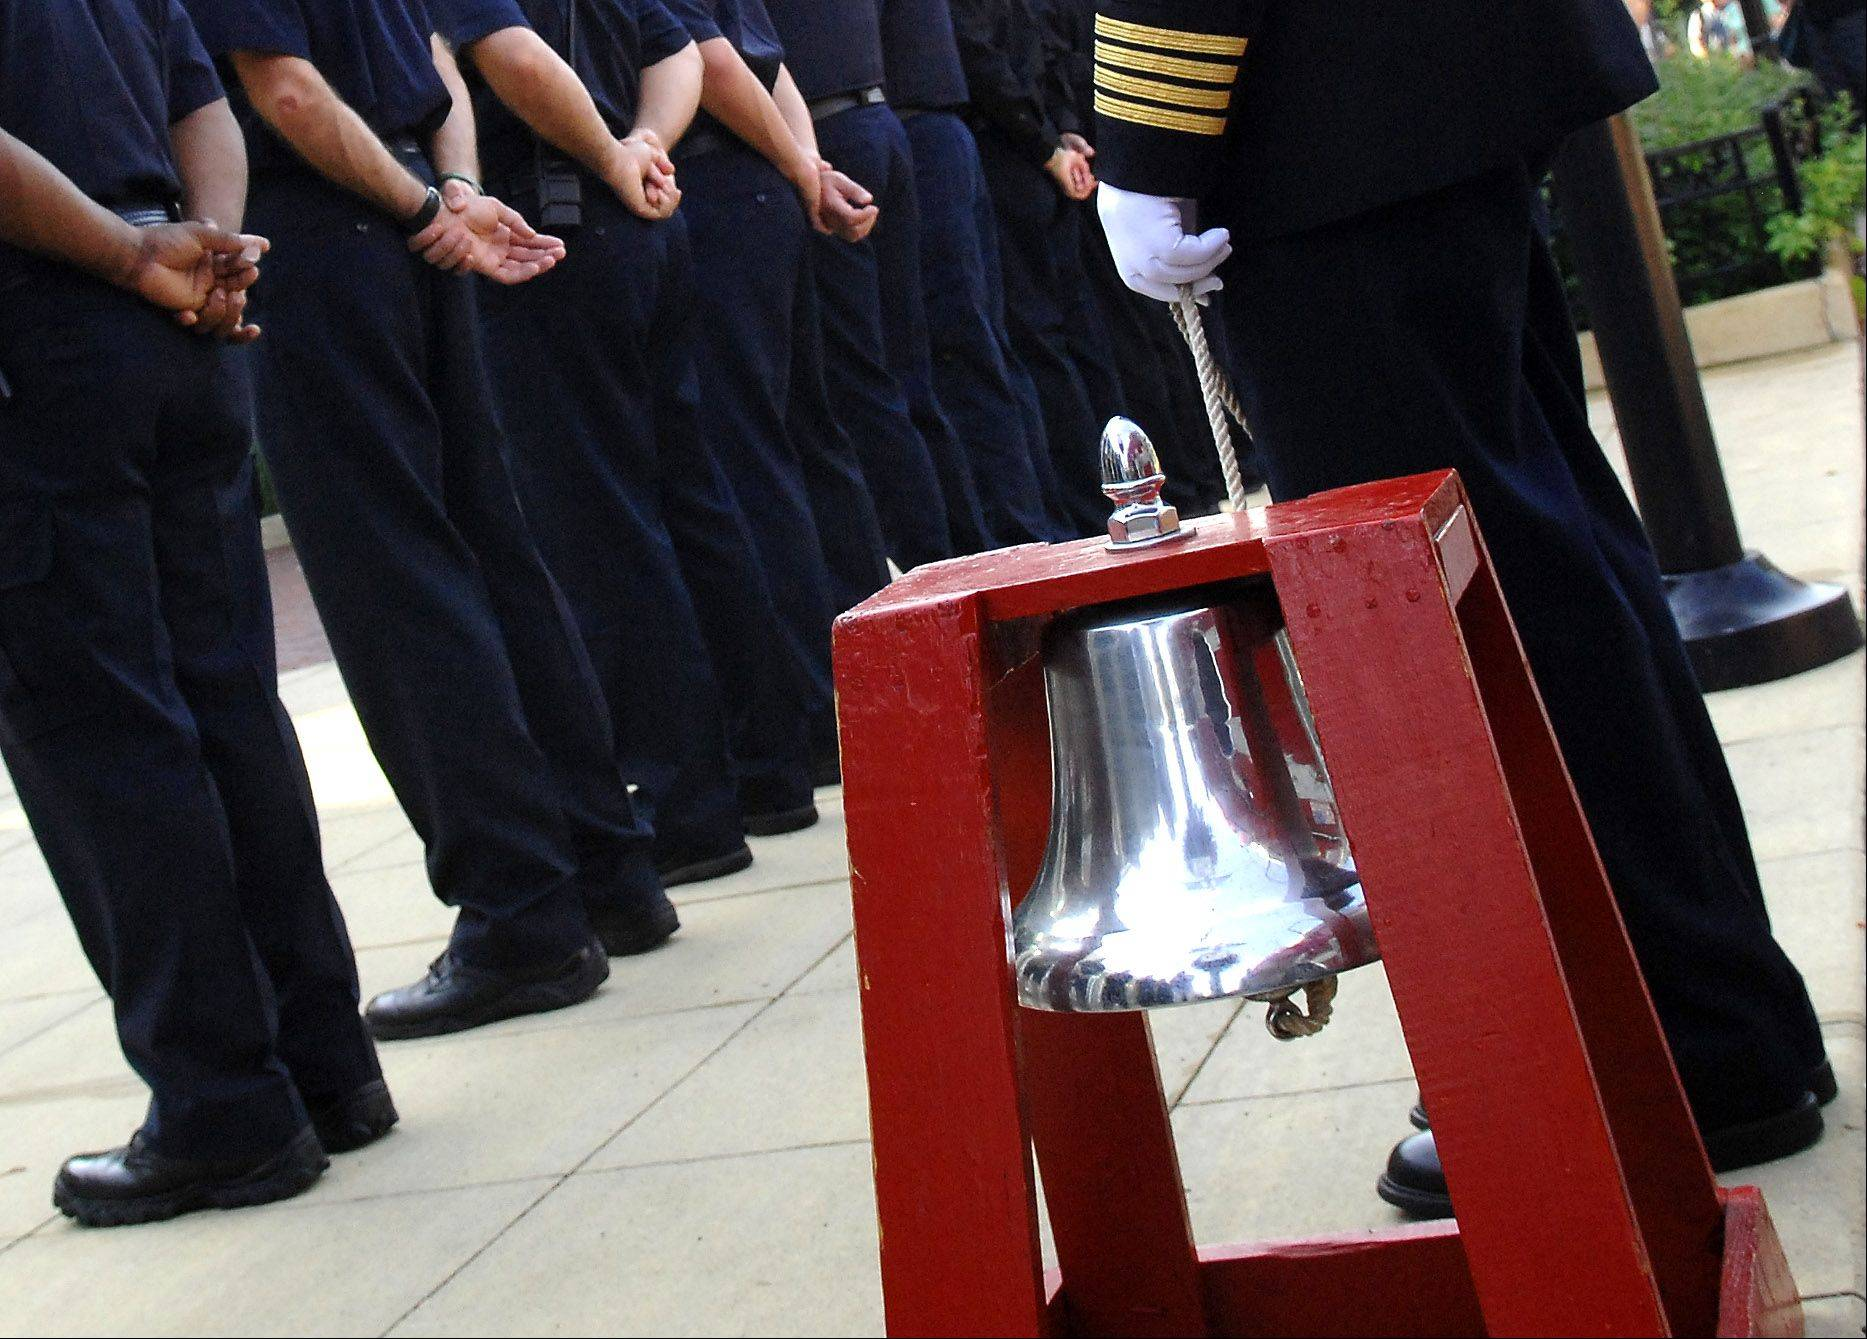 A fire house bell is rung in honor of the firefighters who lost their lives in the aftermath of the terrorist attacks of 2001 during the city of Elgin's Sept. 11th ceremony Wednesday in front of the police department.